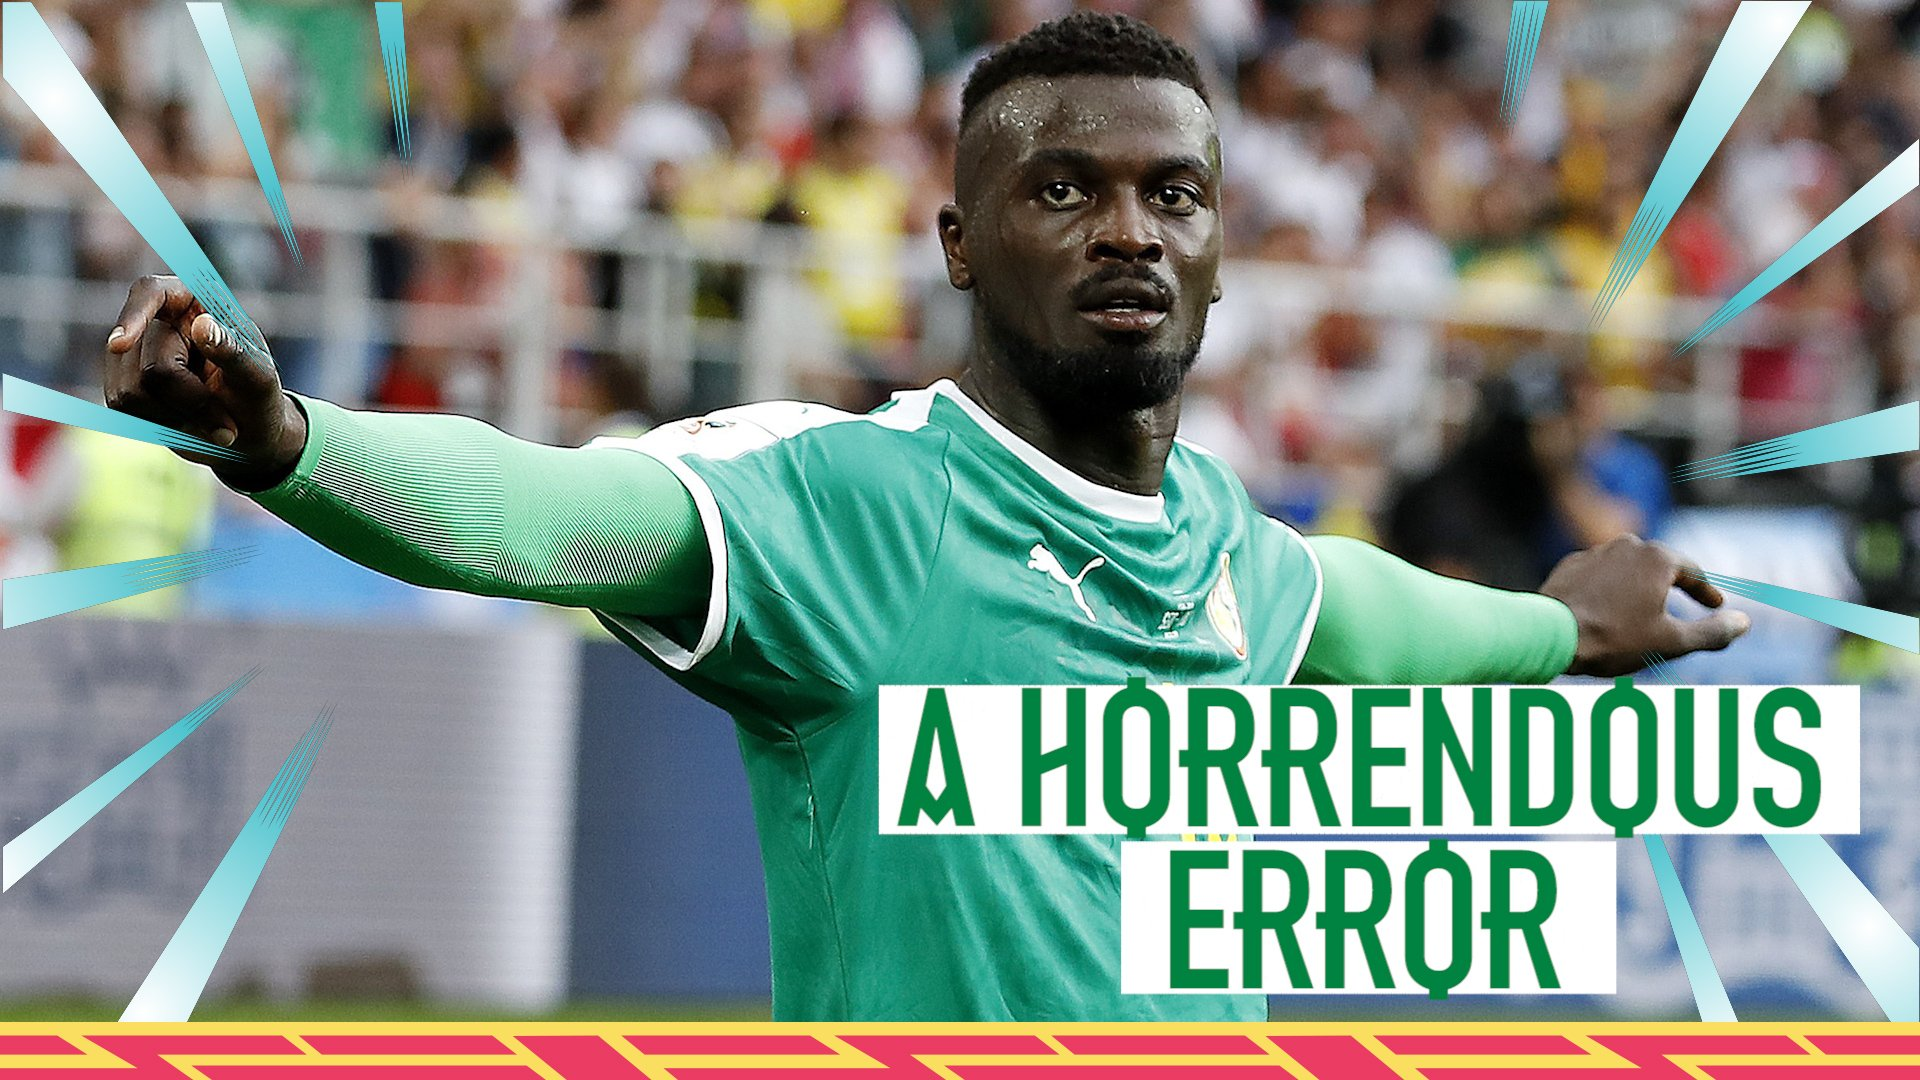 Watch: Horrendous error or perfect plan for Senegal goal?